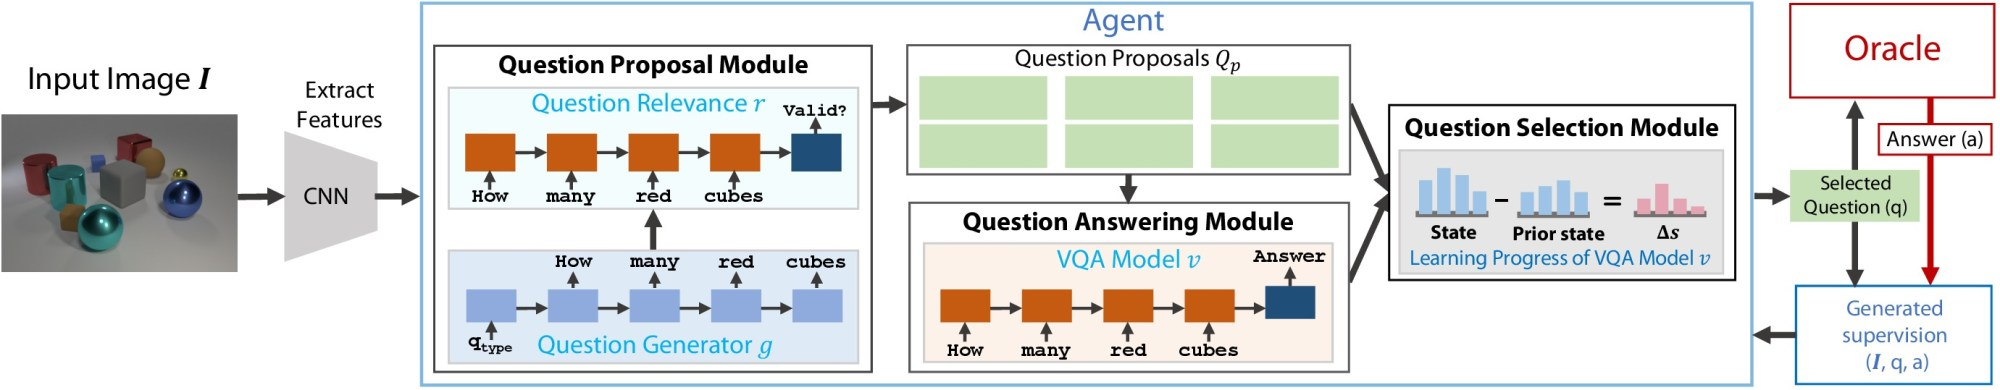 hight resolution of question proposal module is responsible for generating important questions about the image it is a combination of 2 models